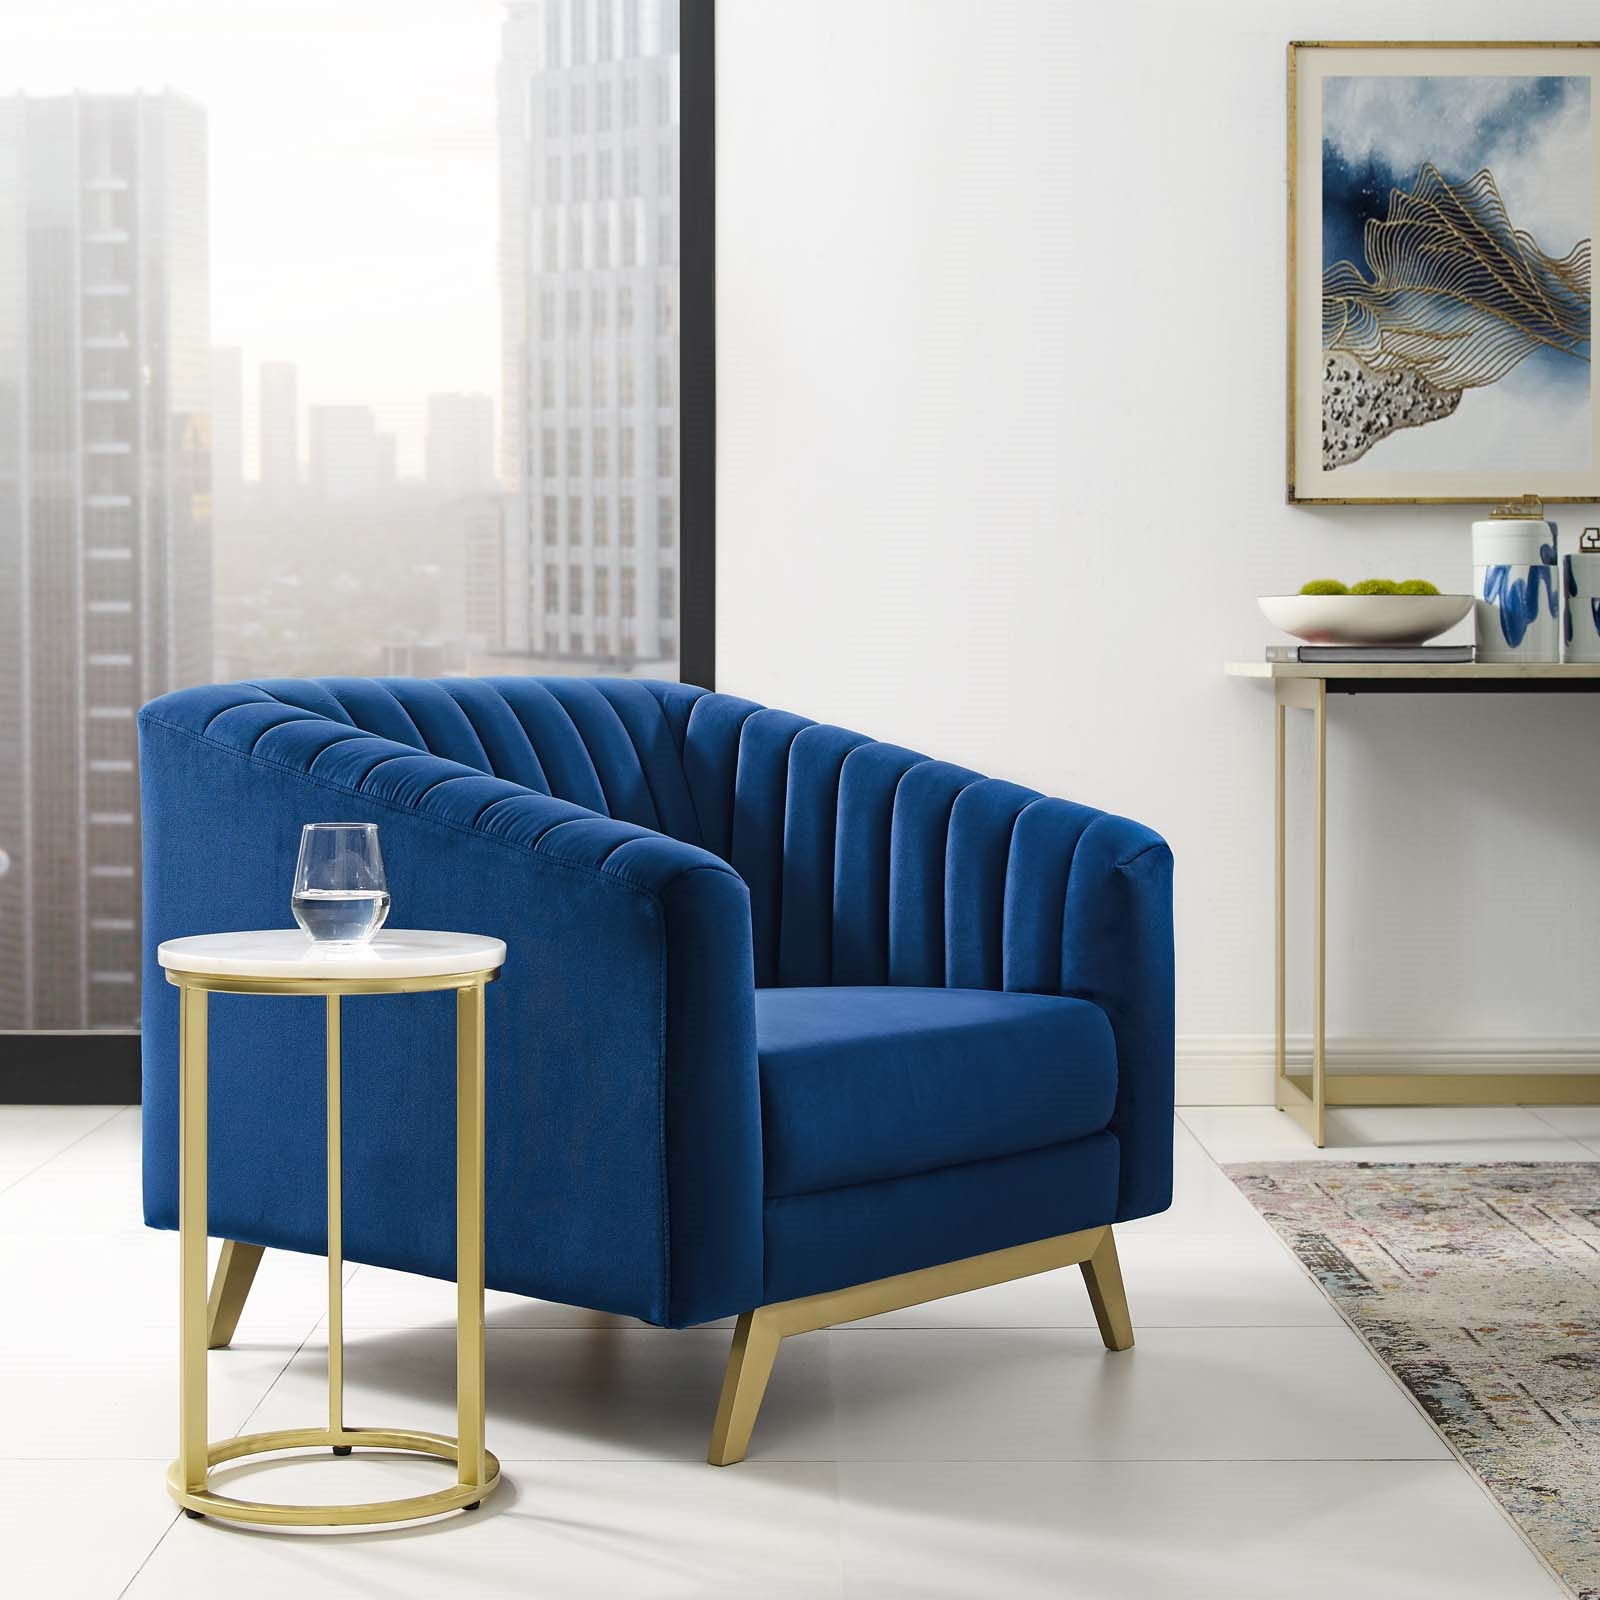 Valiant Vertical Channel Tufted Performance Velvet Armchair in Navy